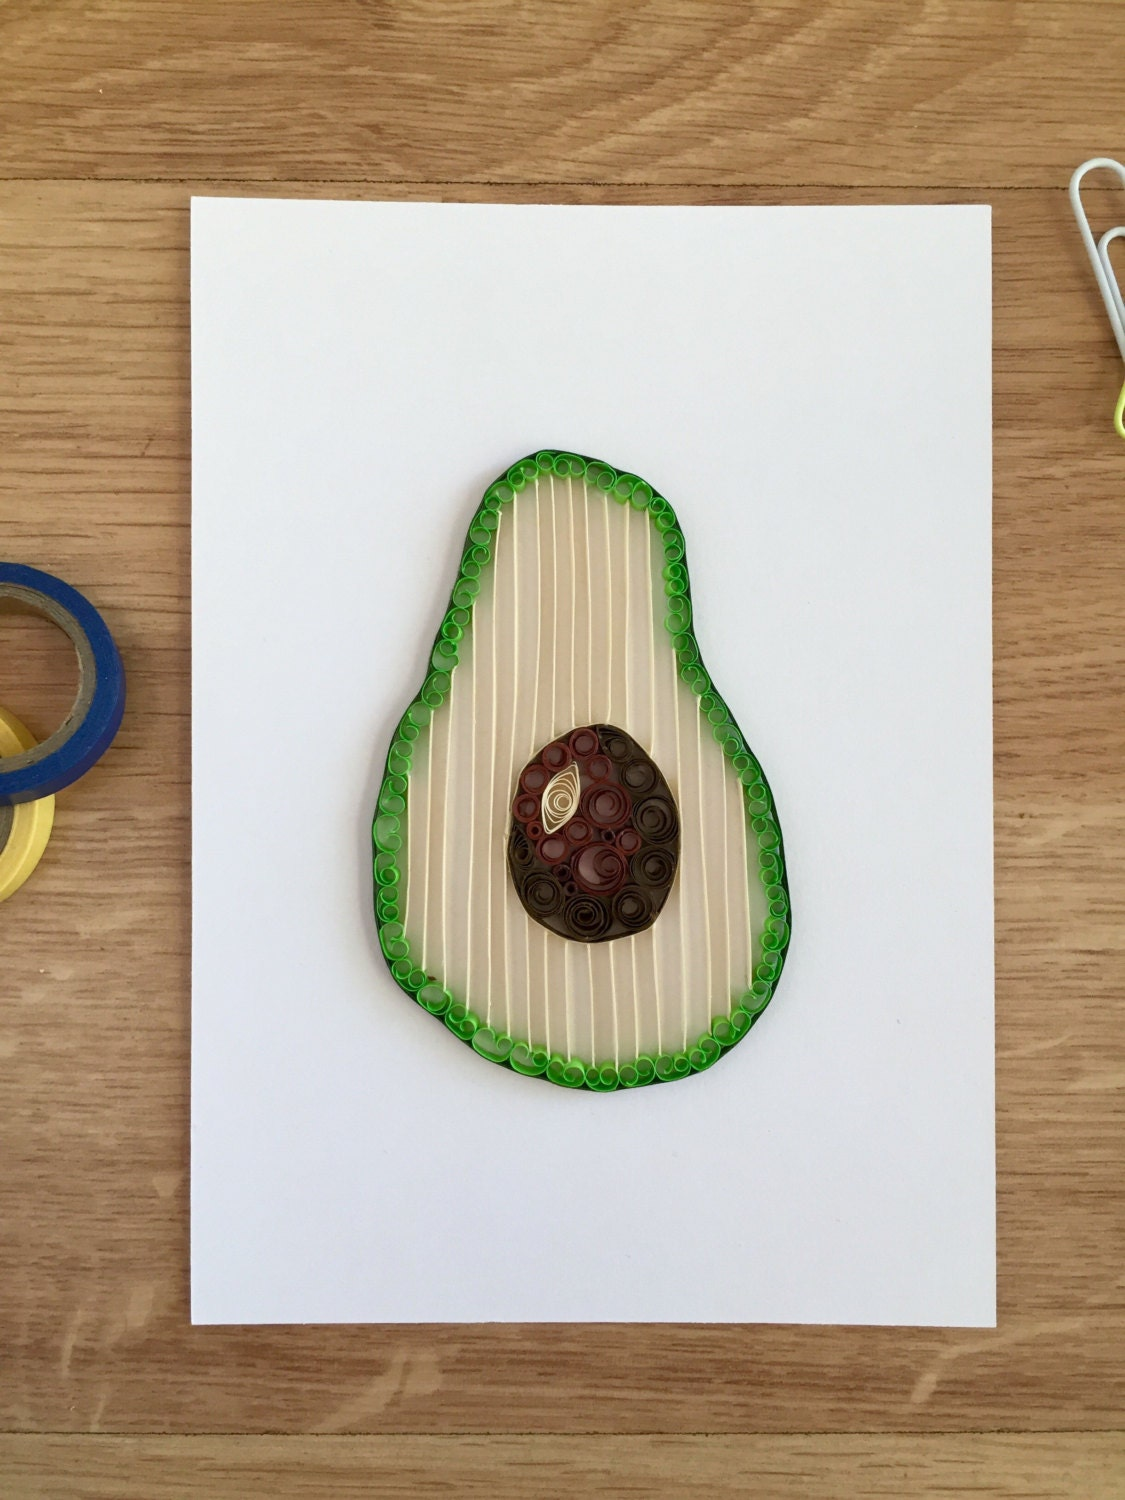 Quilling paper avocado home decor gift for foodies good gift for Quilling home decor